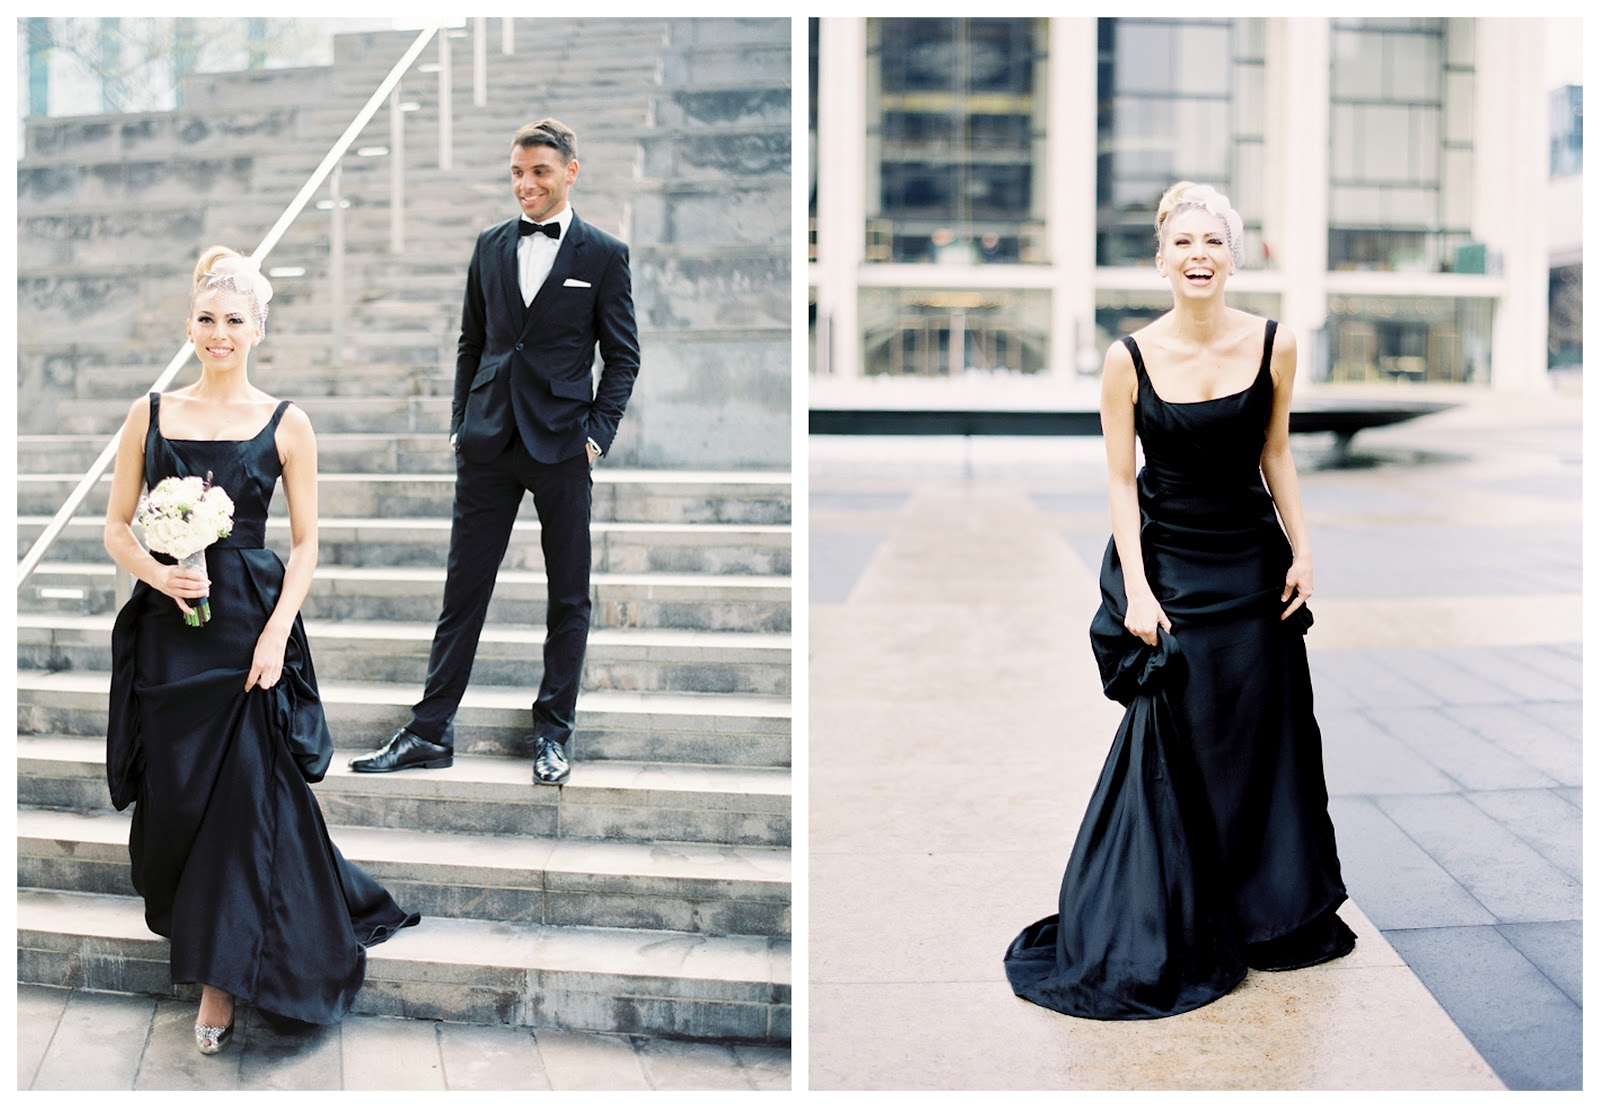 Cheap black wedding dresses uk sites